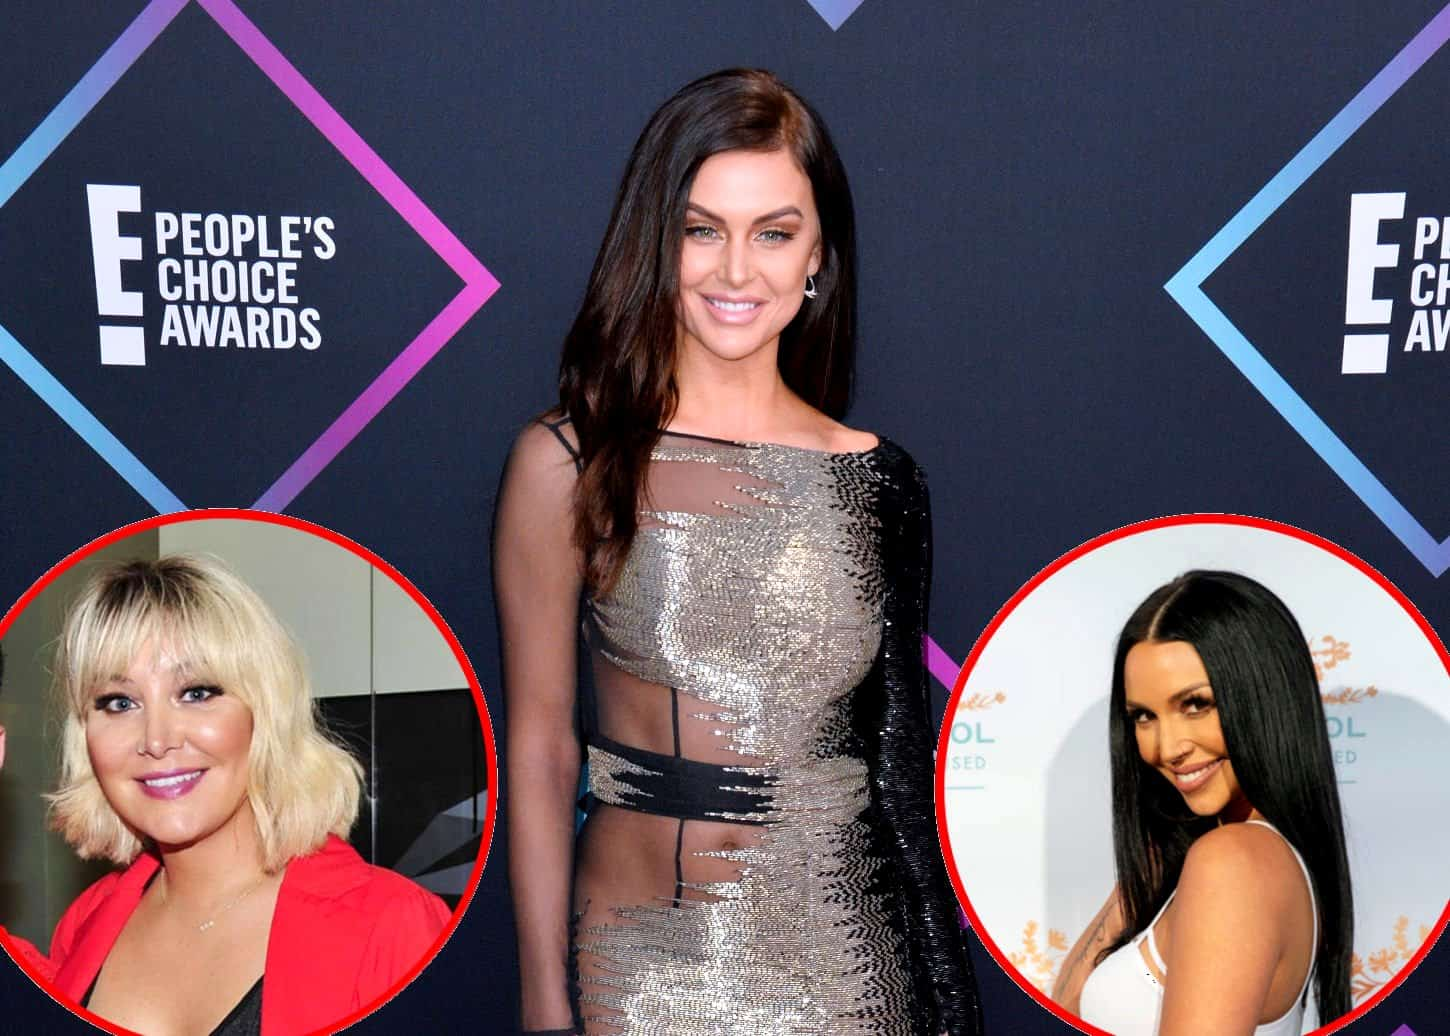 Vanderpump Rules' Lala Kent Slams